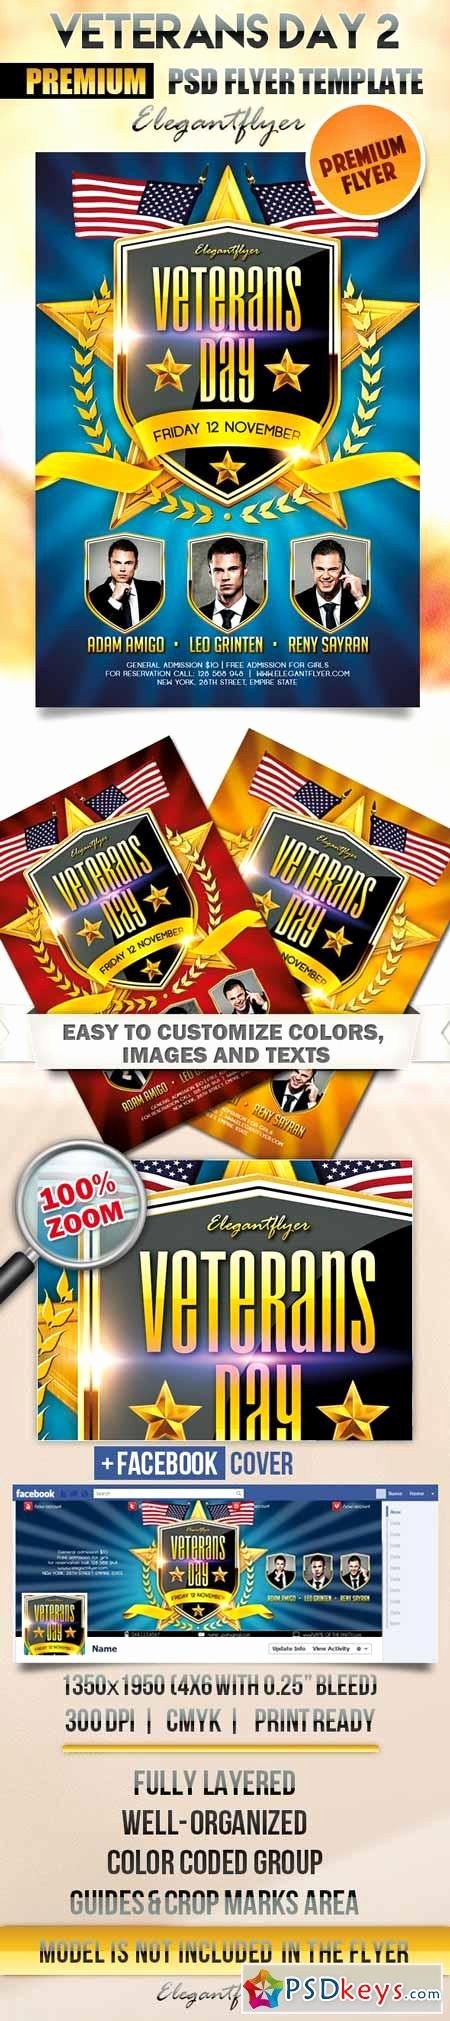 Veterans Day Flyer Templates Free Awesome Veterans Day 2 – Flyer Psd Template Cover